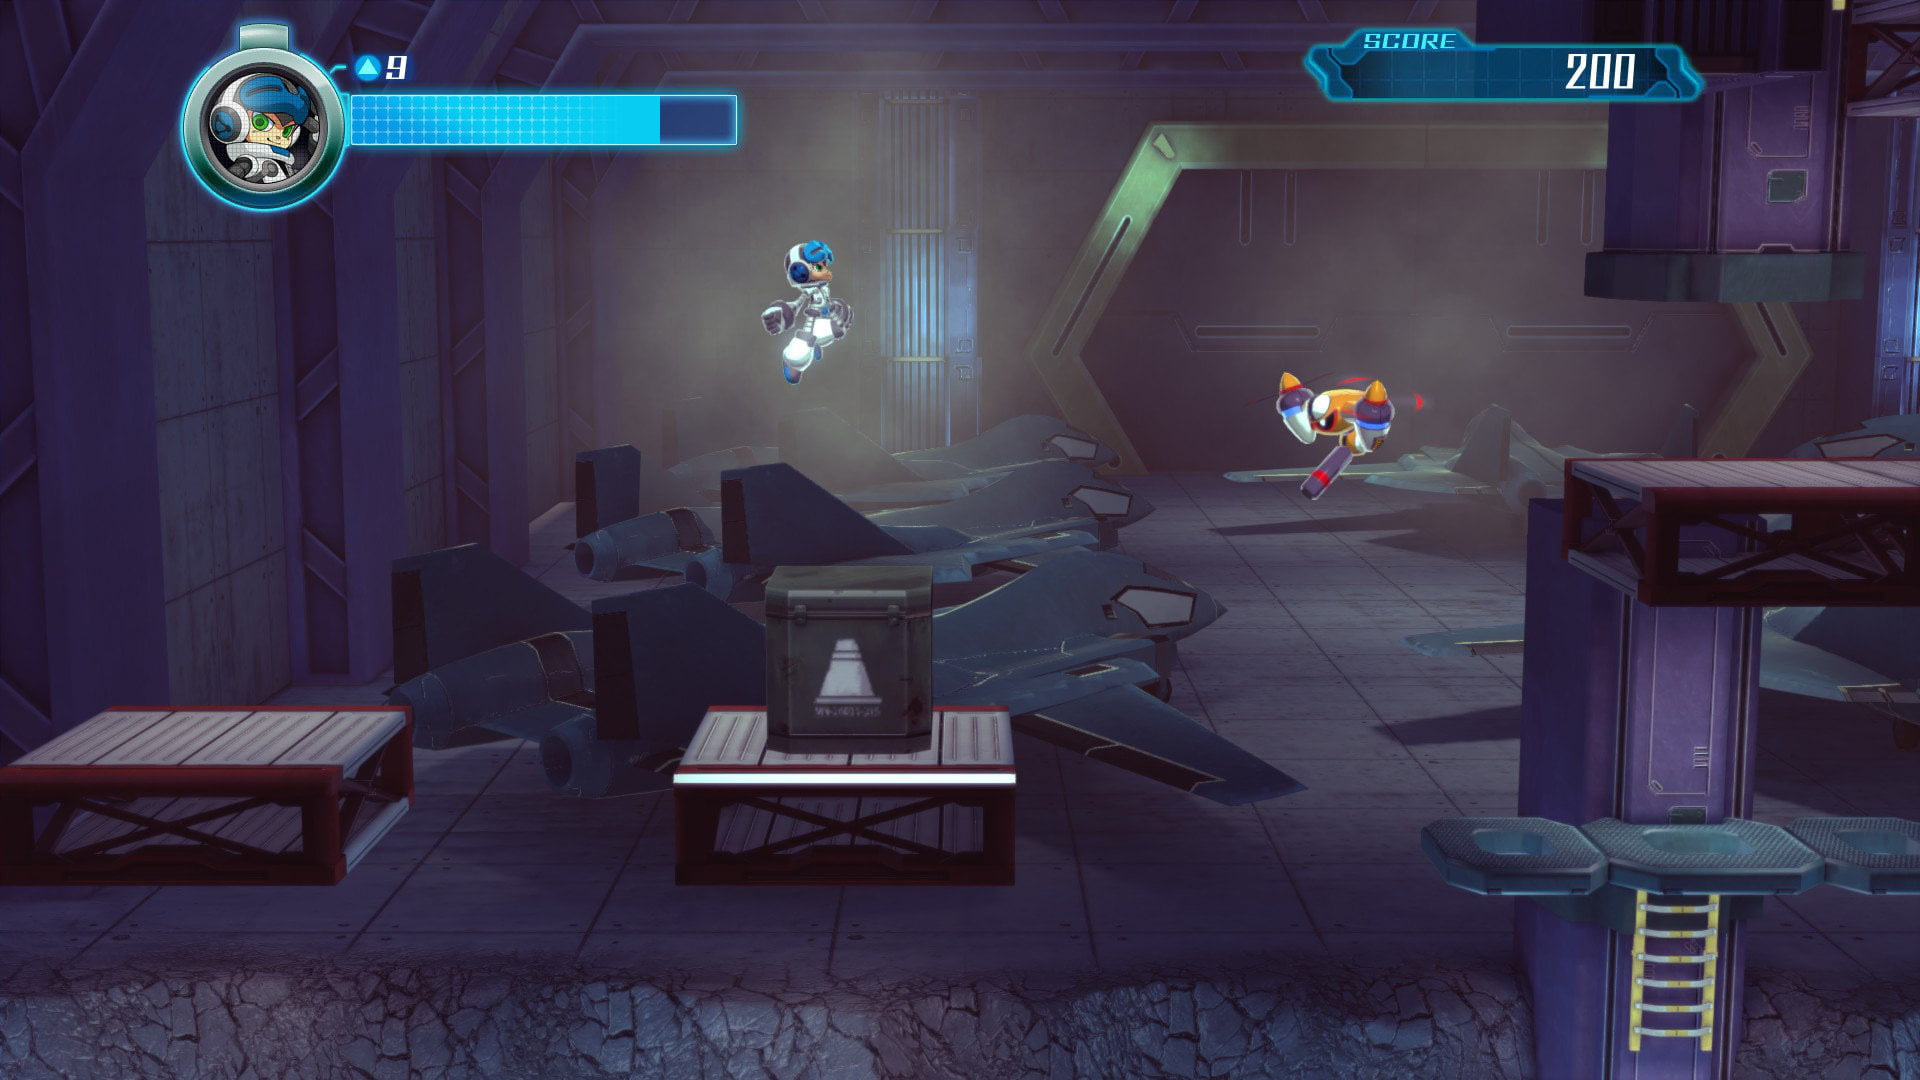 mighty-no-9-screenshot-02-ps4-ps3-psv-us-10apr15